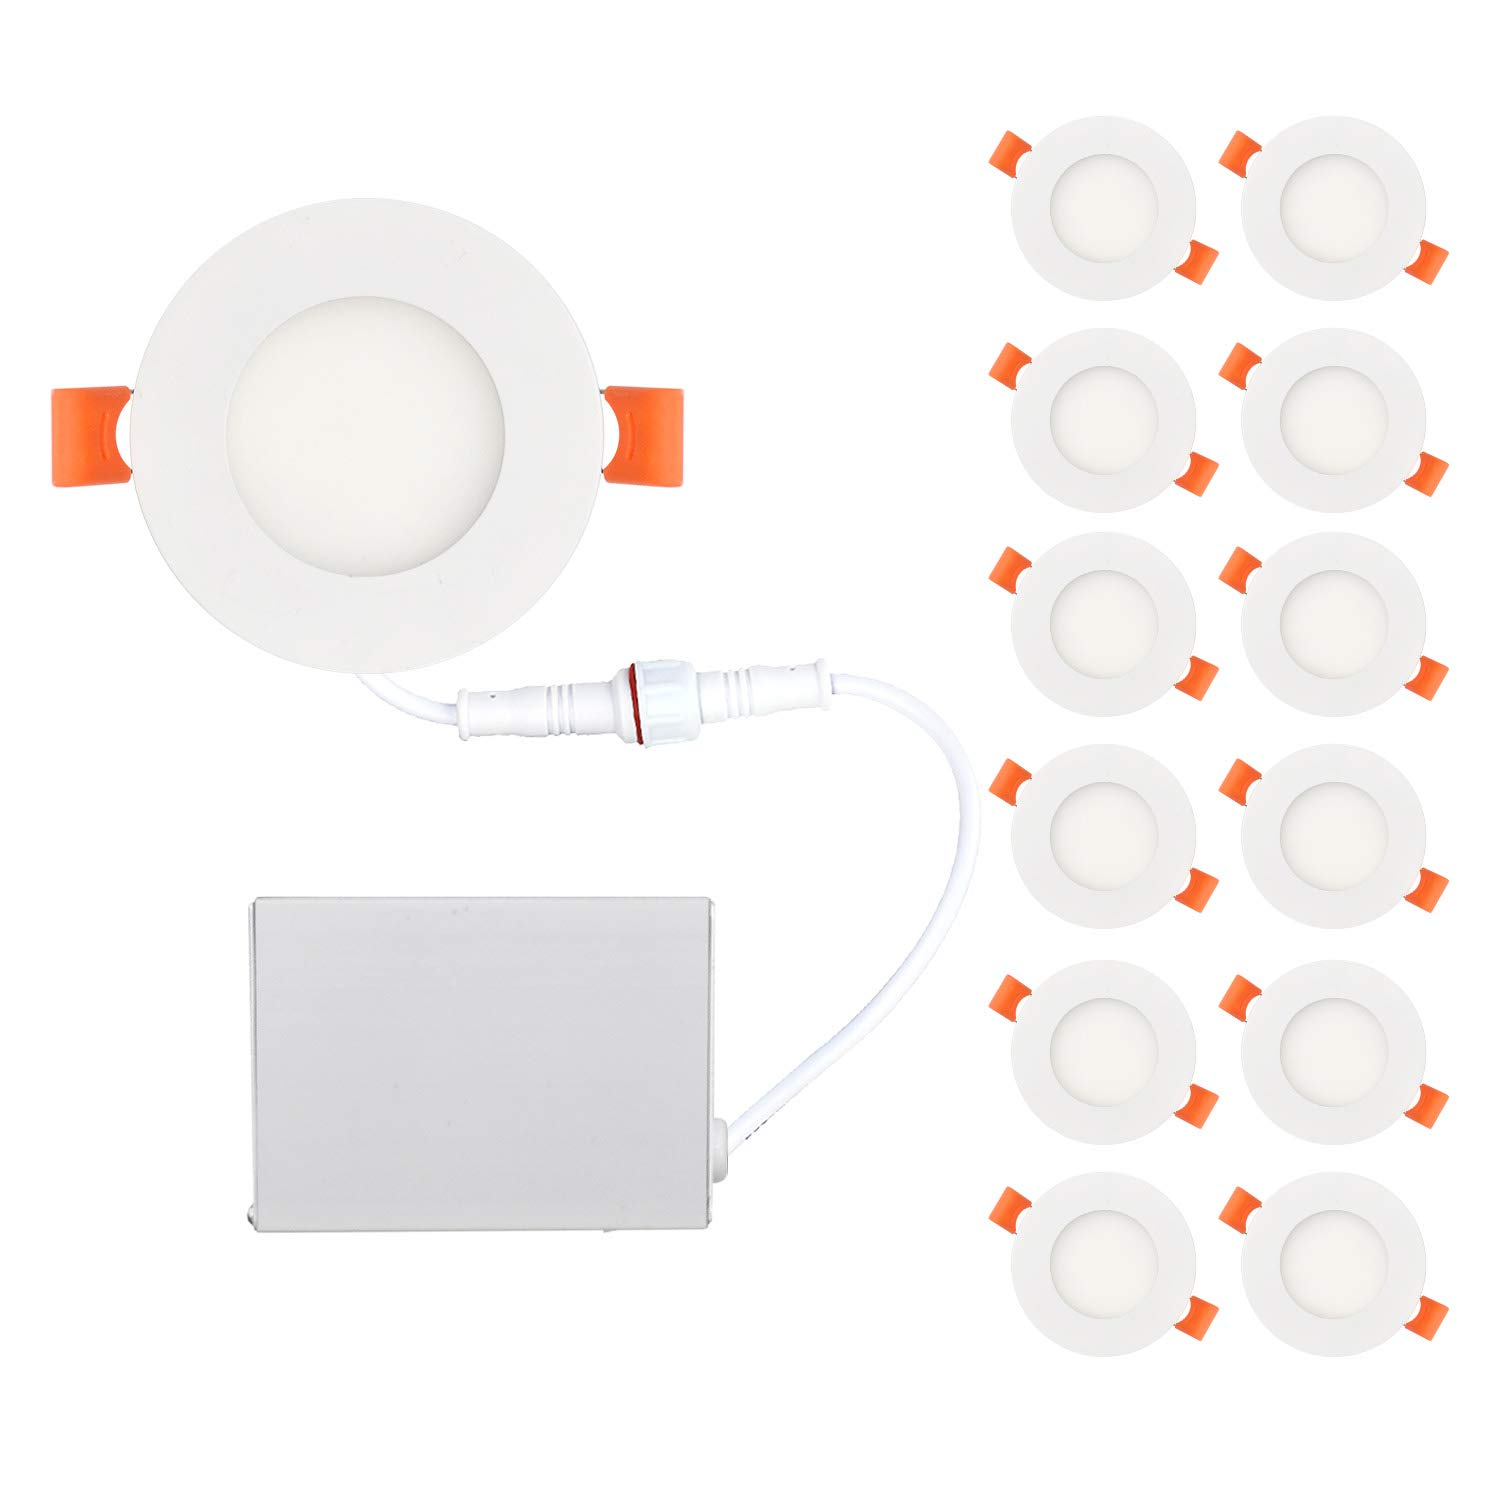 OSTWIN 3 inch 6W (30 Watt Repl.) IC Rated LED Recessed Low Profile Slim Round Panel Light with Junction Box, Dimmable, 4000K Bright Light 420 Lm, 12 Pack No Can Needed ETL & Energy Star Listed